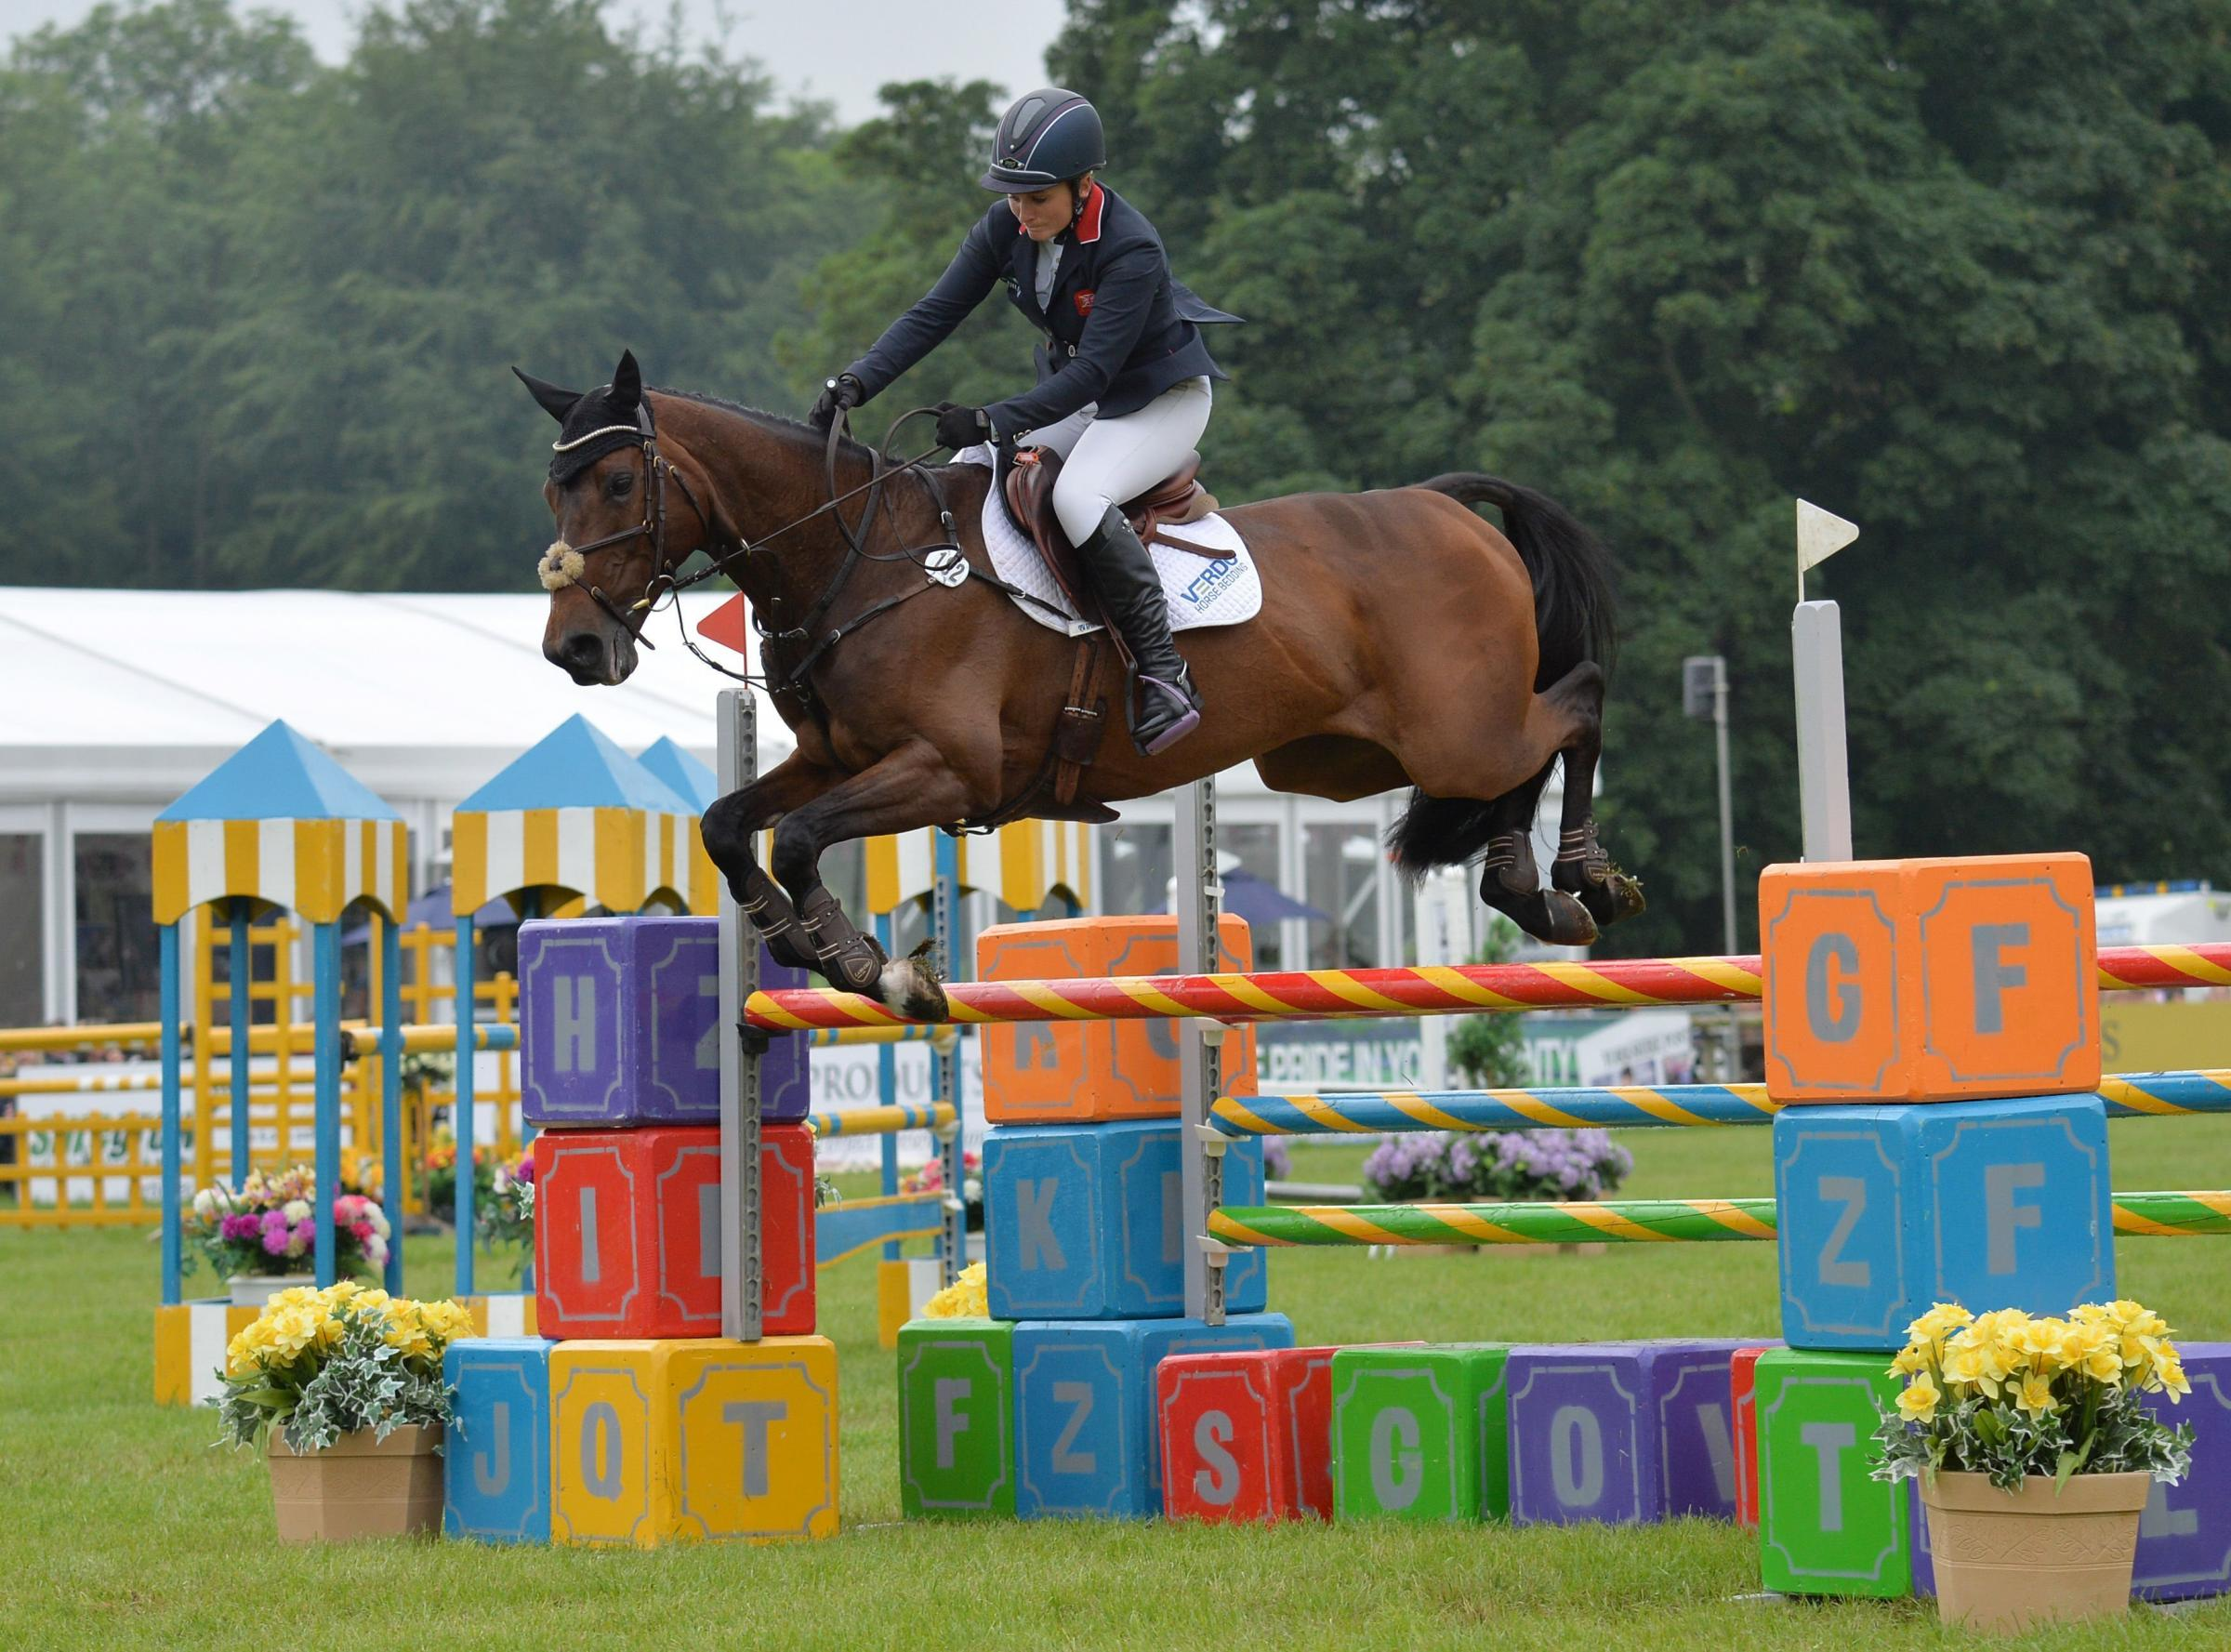 Gemma Tattersall riding Chico Bella P in action during day four of the Bramham Horse trials at Bramham Park. Picture: Anna Gowthorpe/PA Wire